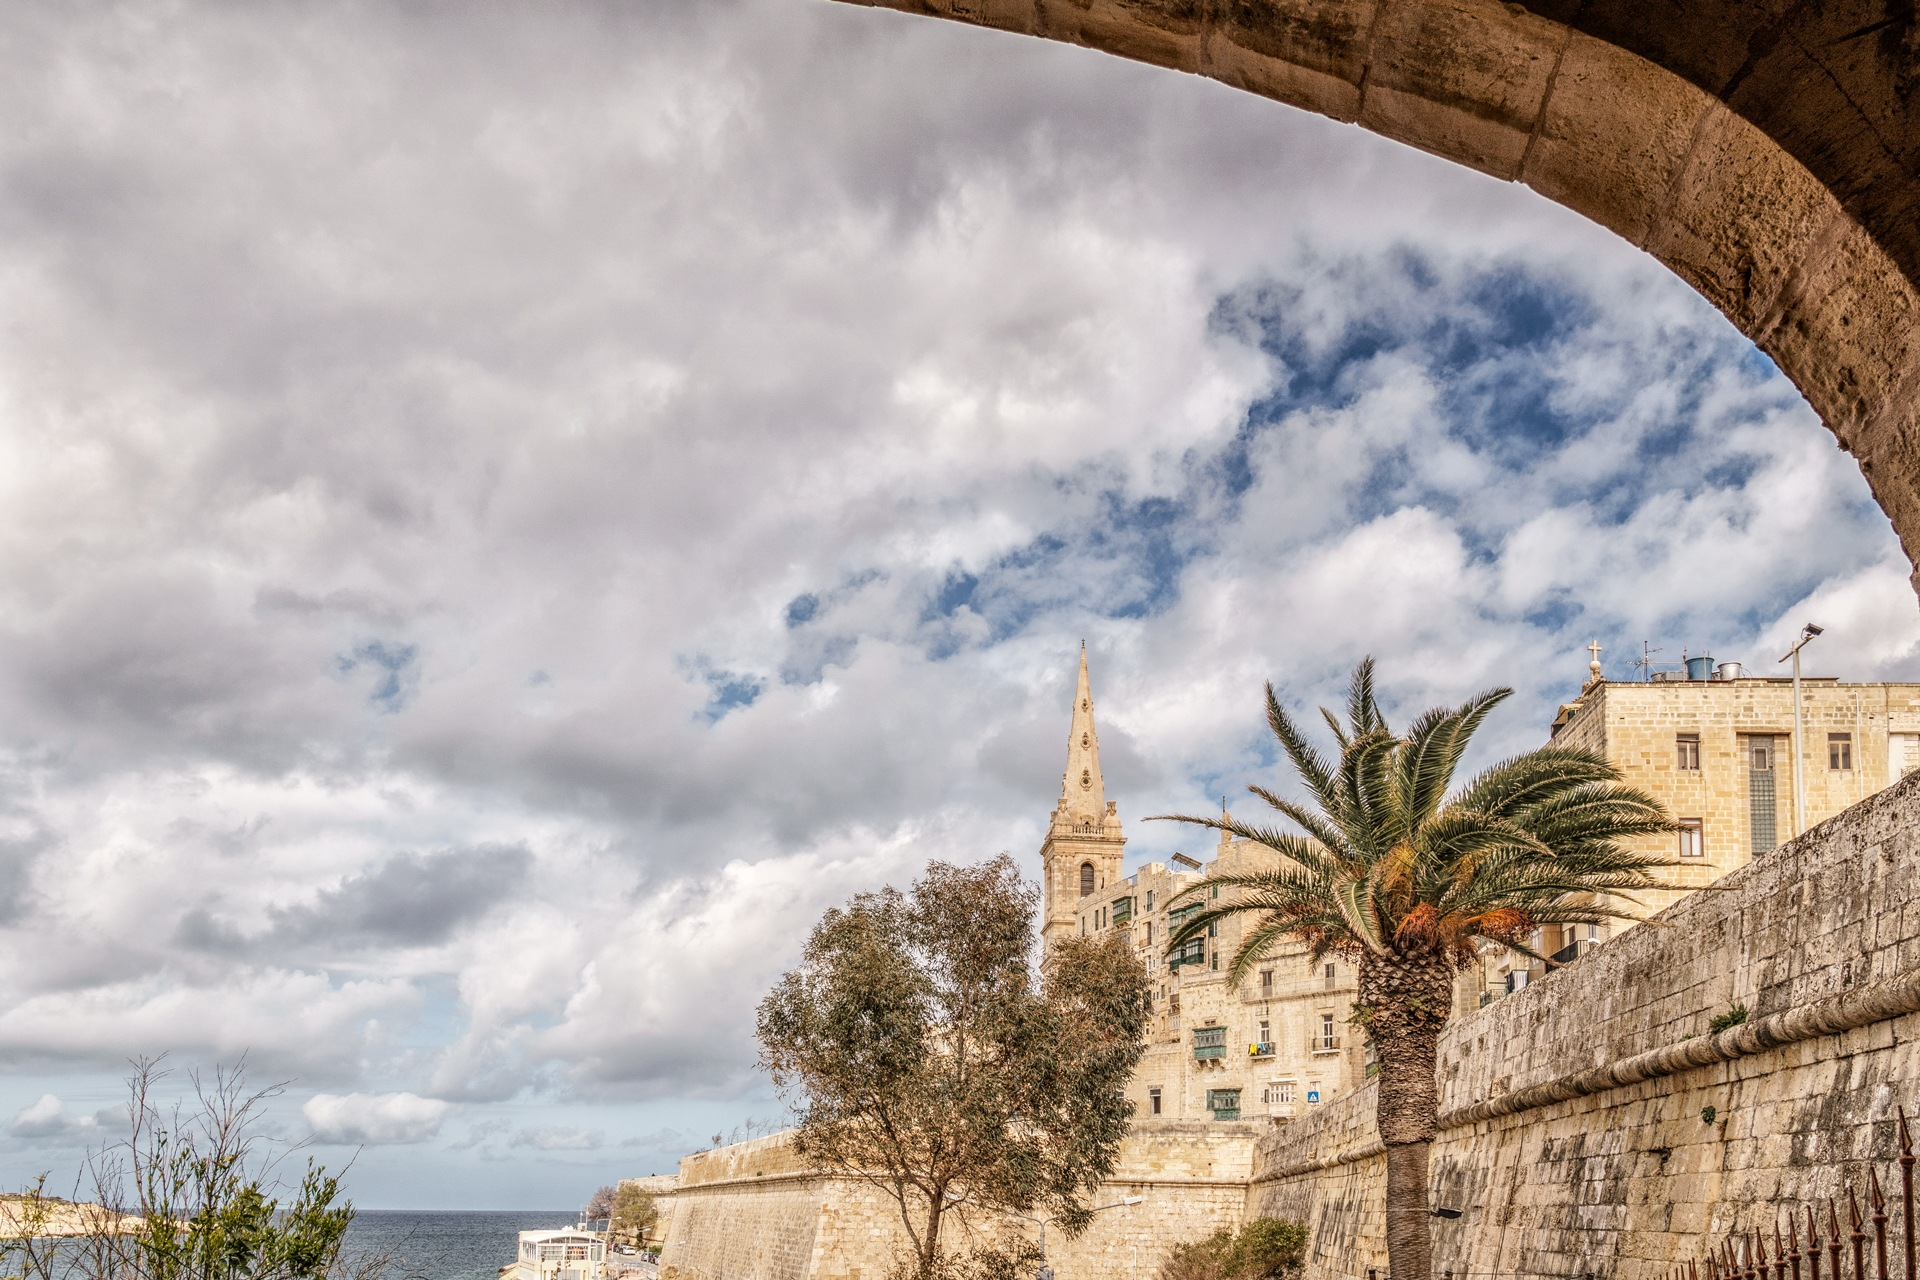 Obstructed view to Valletta by Venelin Todorov